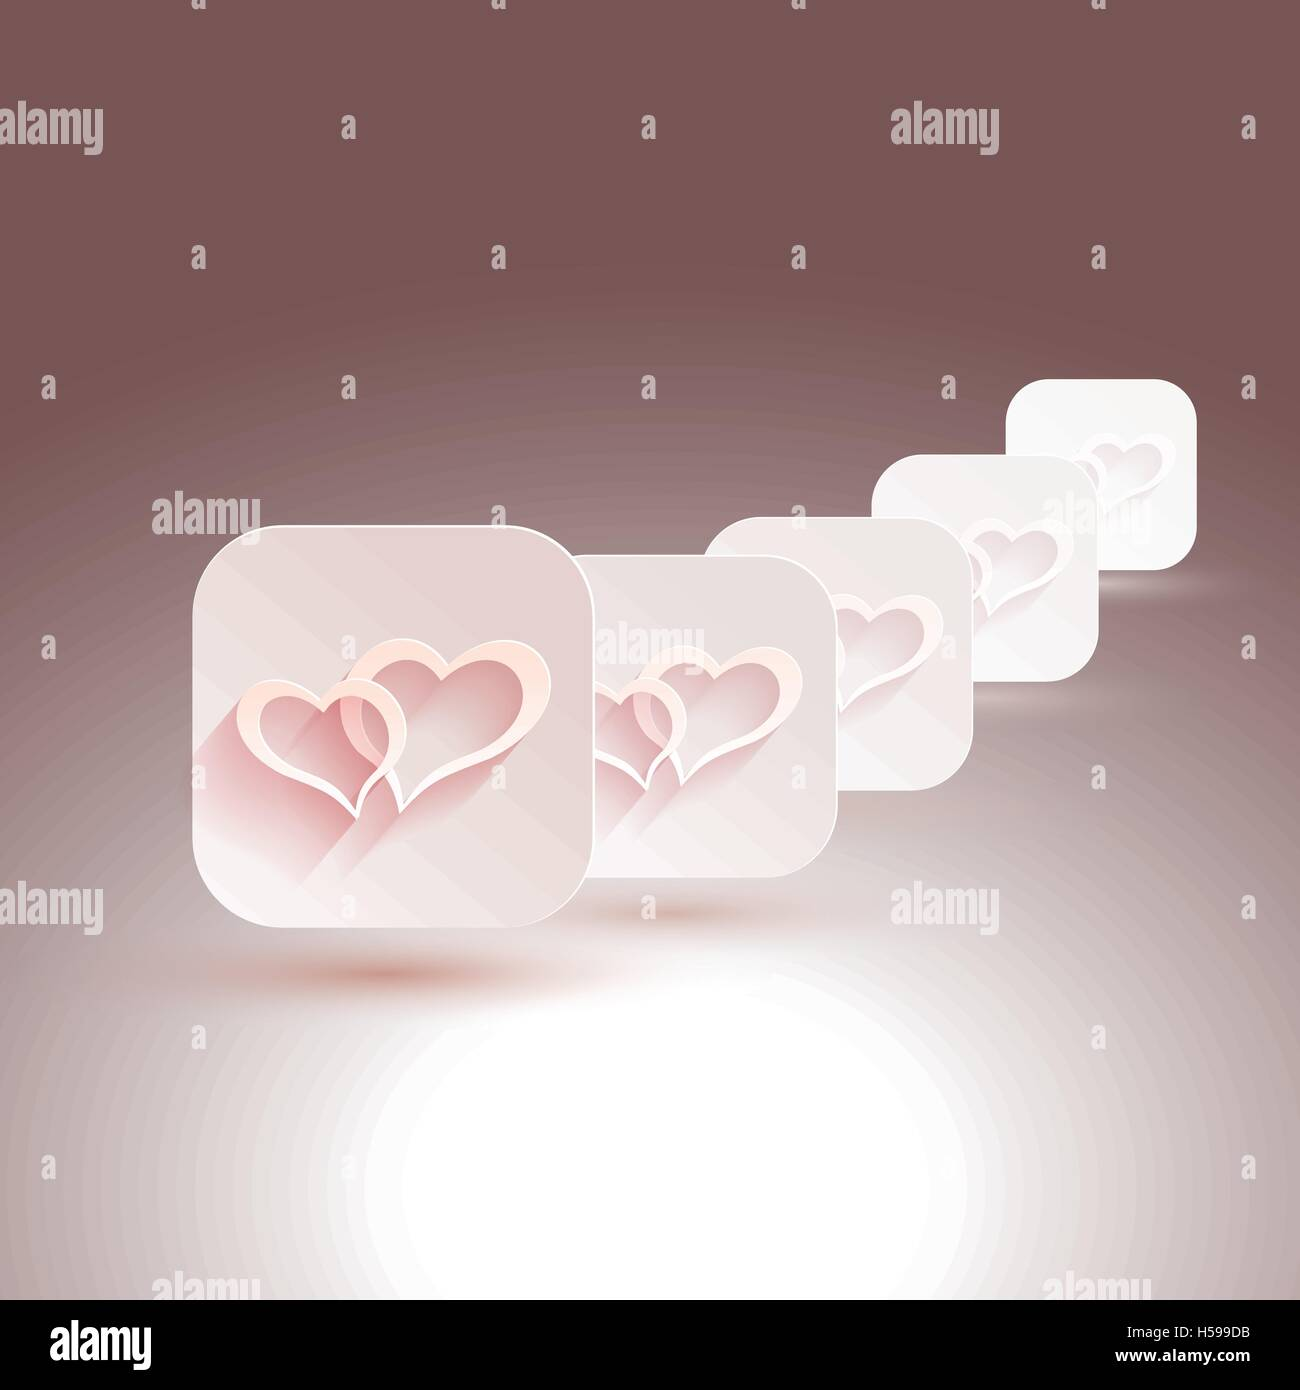 Vector stylish design hearts with shadows for designs of wedding